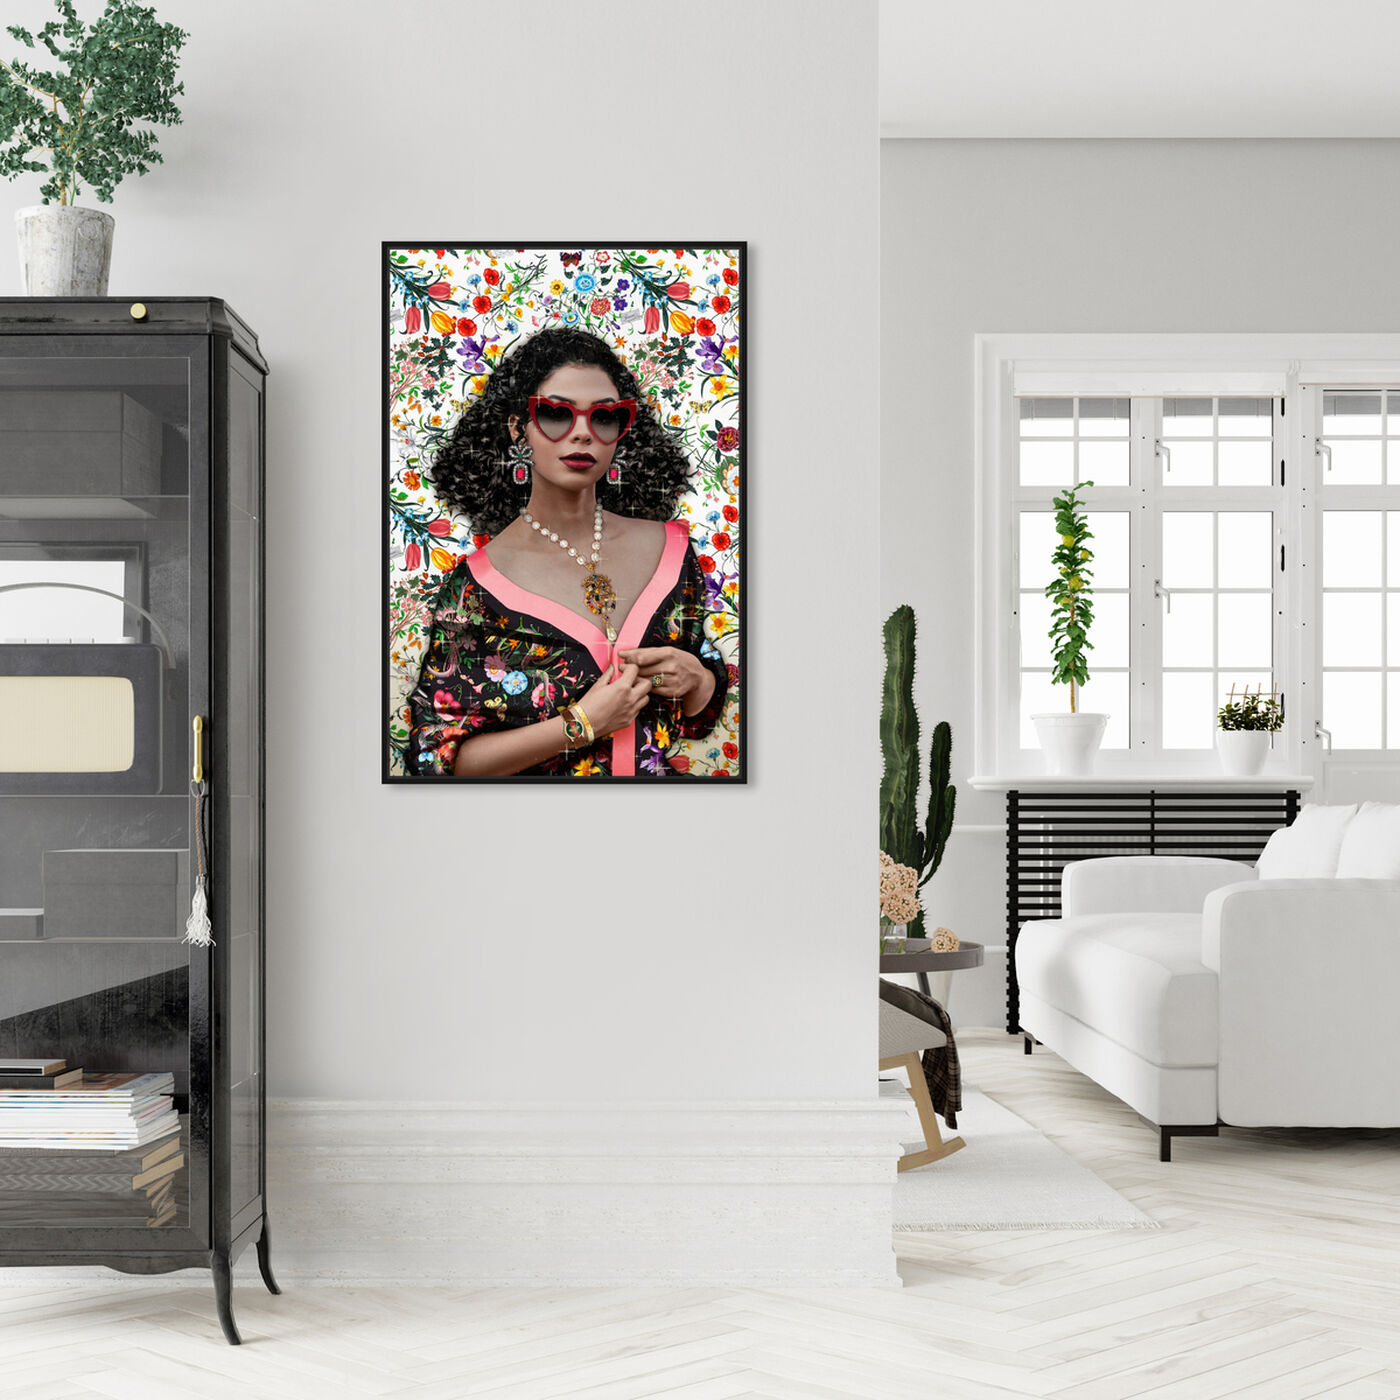 Hanging view of In a Flower Shower featuring fashion and glam and portraits art.